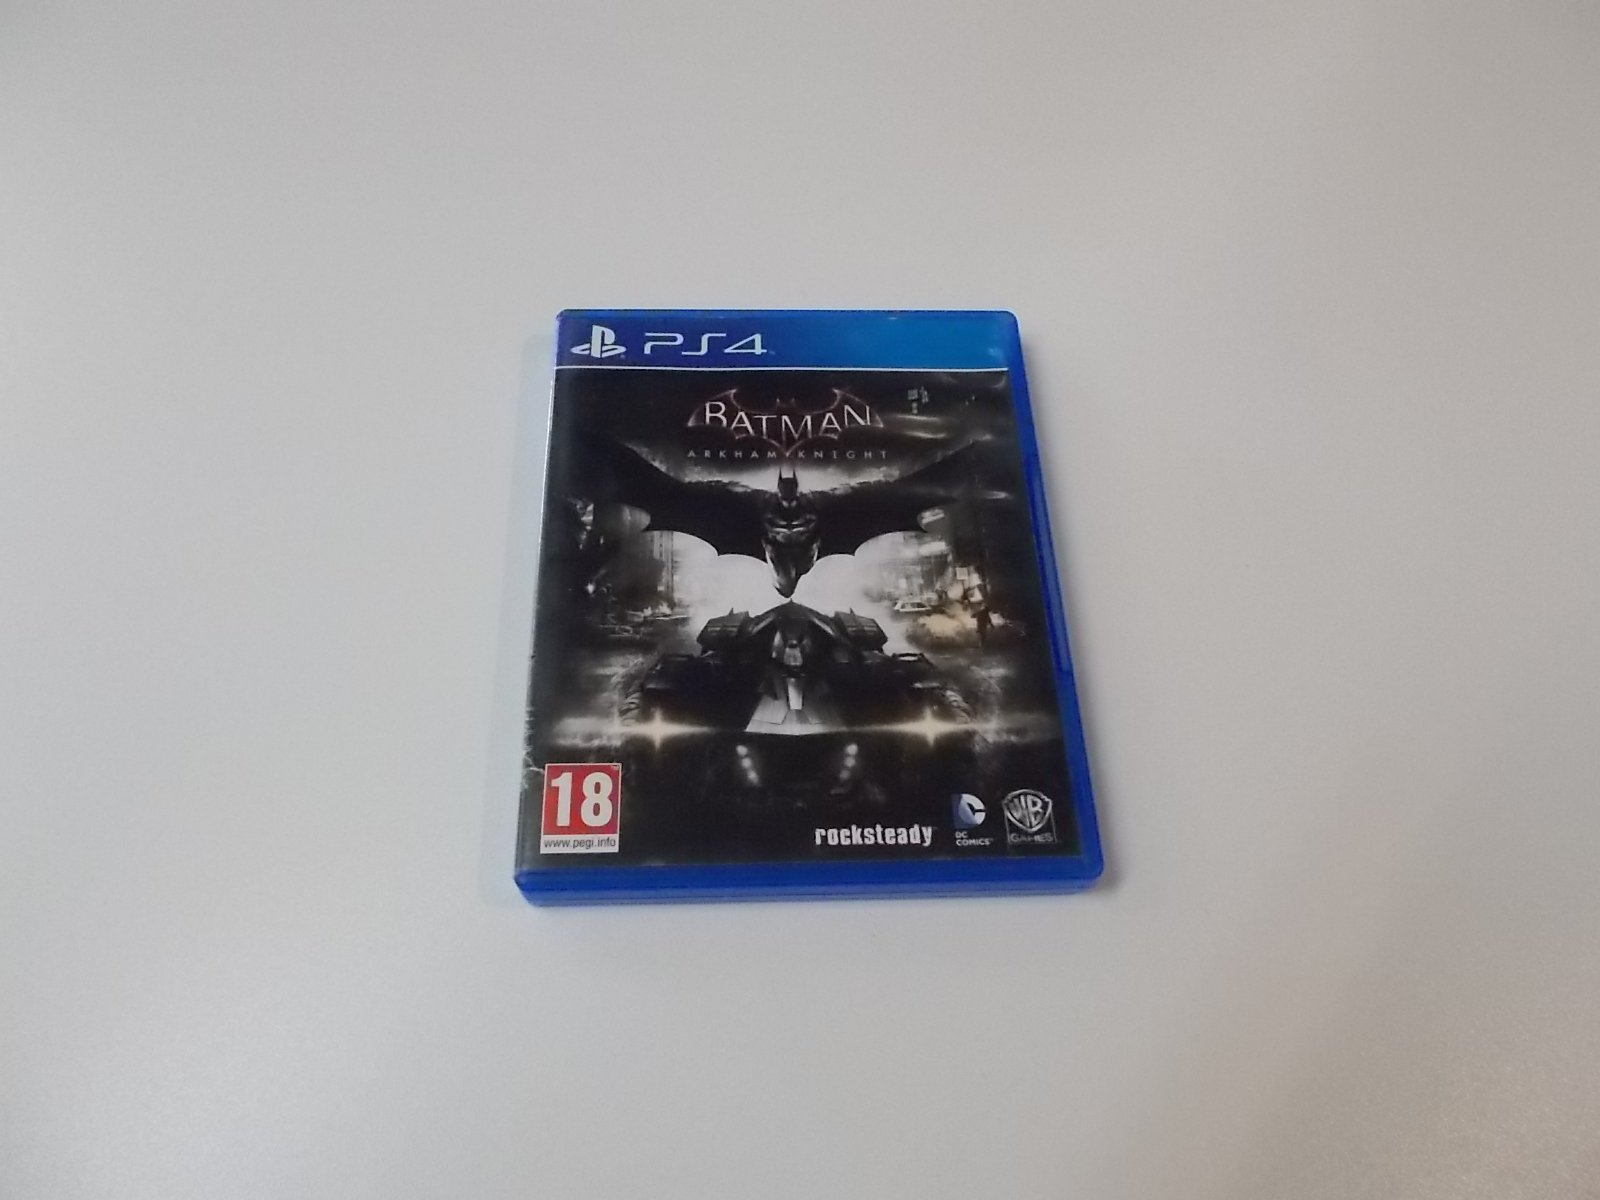 Batman Arkham Knight - GRA Ps4 - Opole 0452